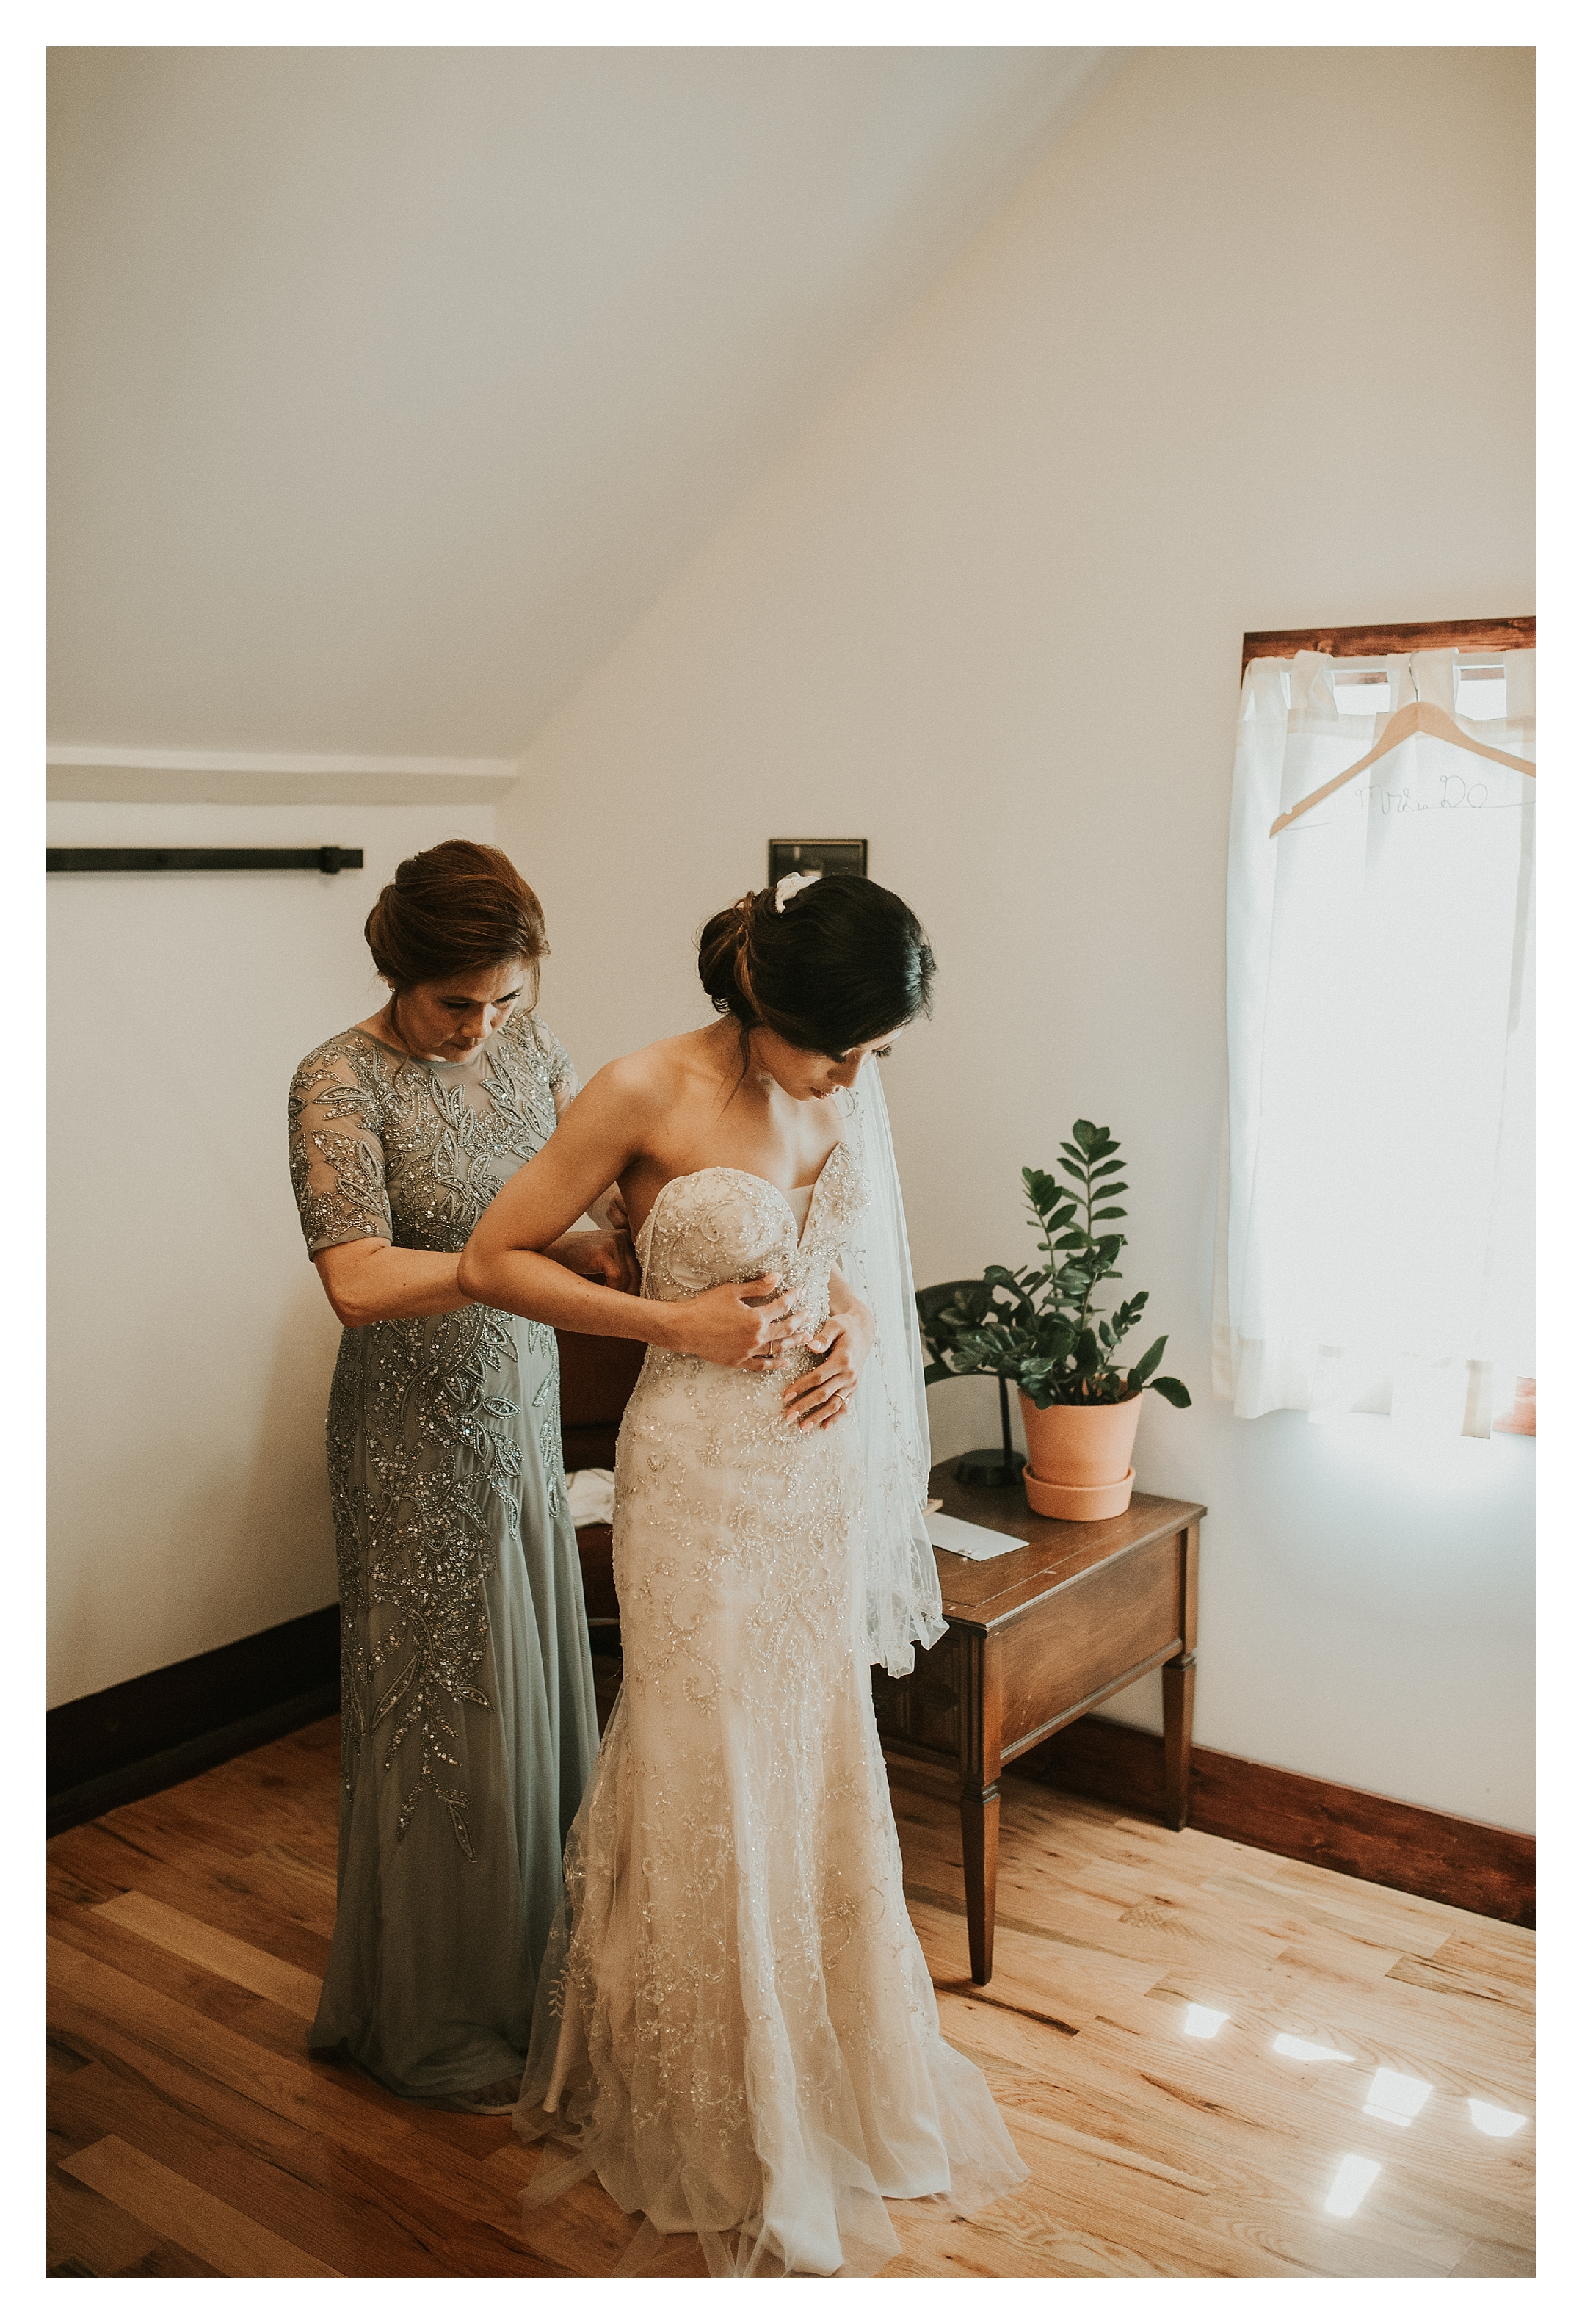 DETRIOT MICHIGAN WEDDING PHOTOGRAPHER